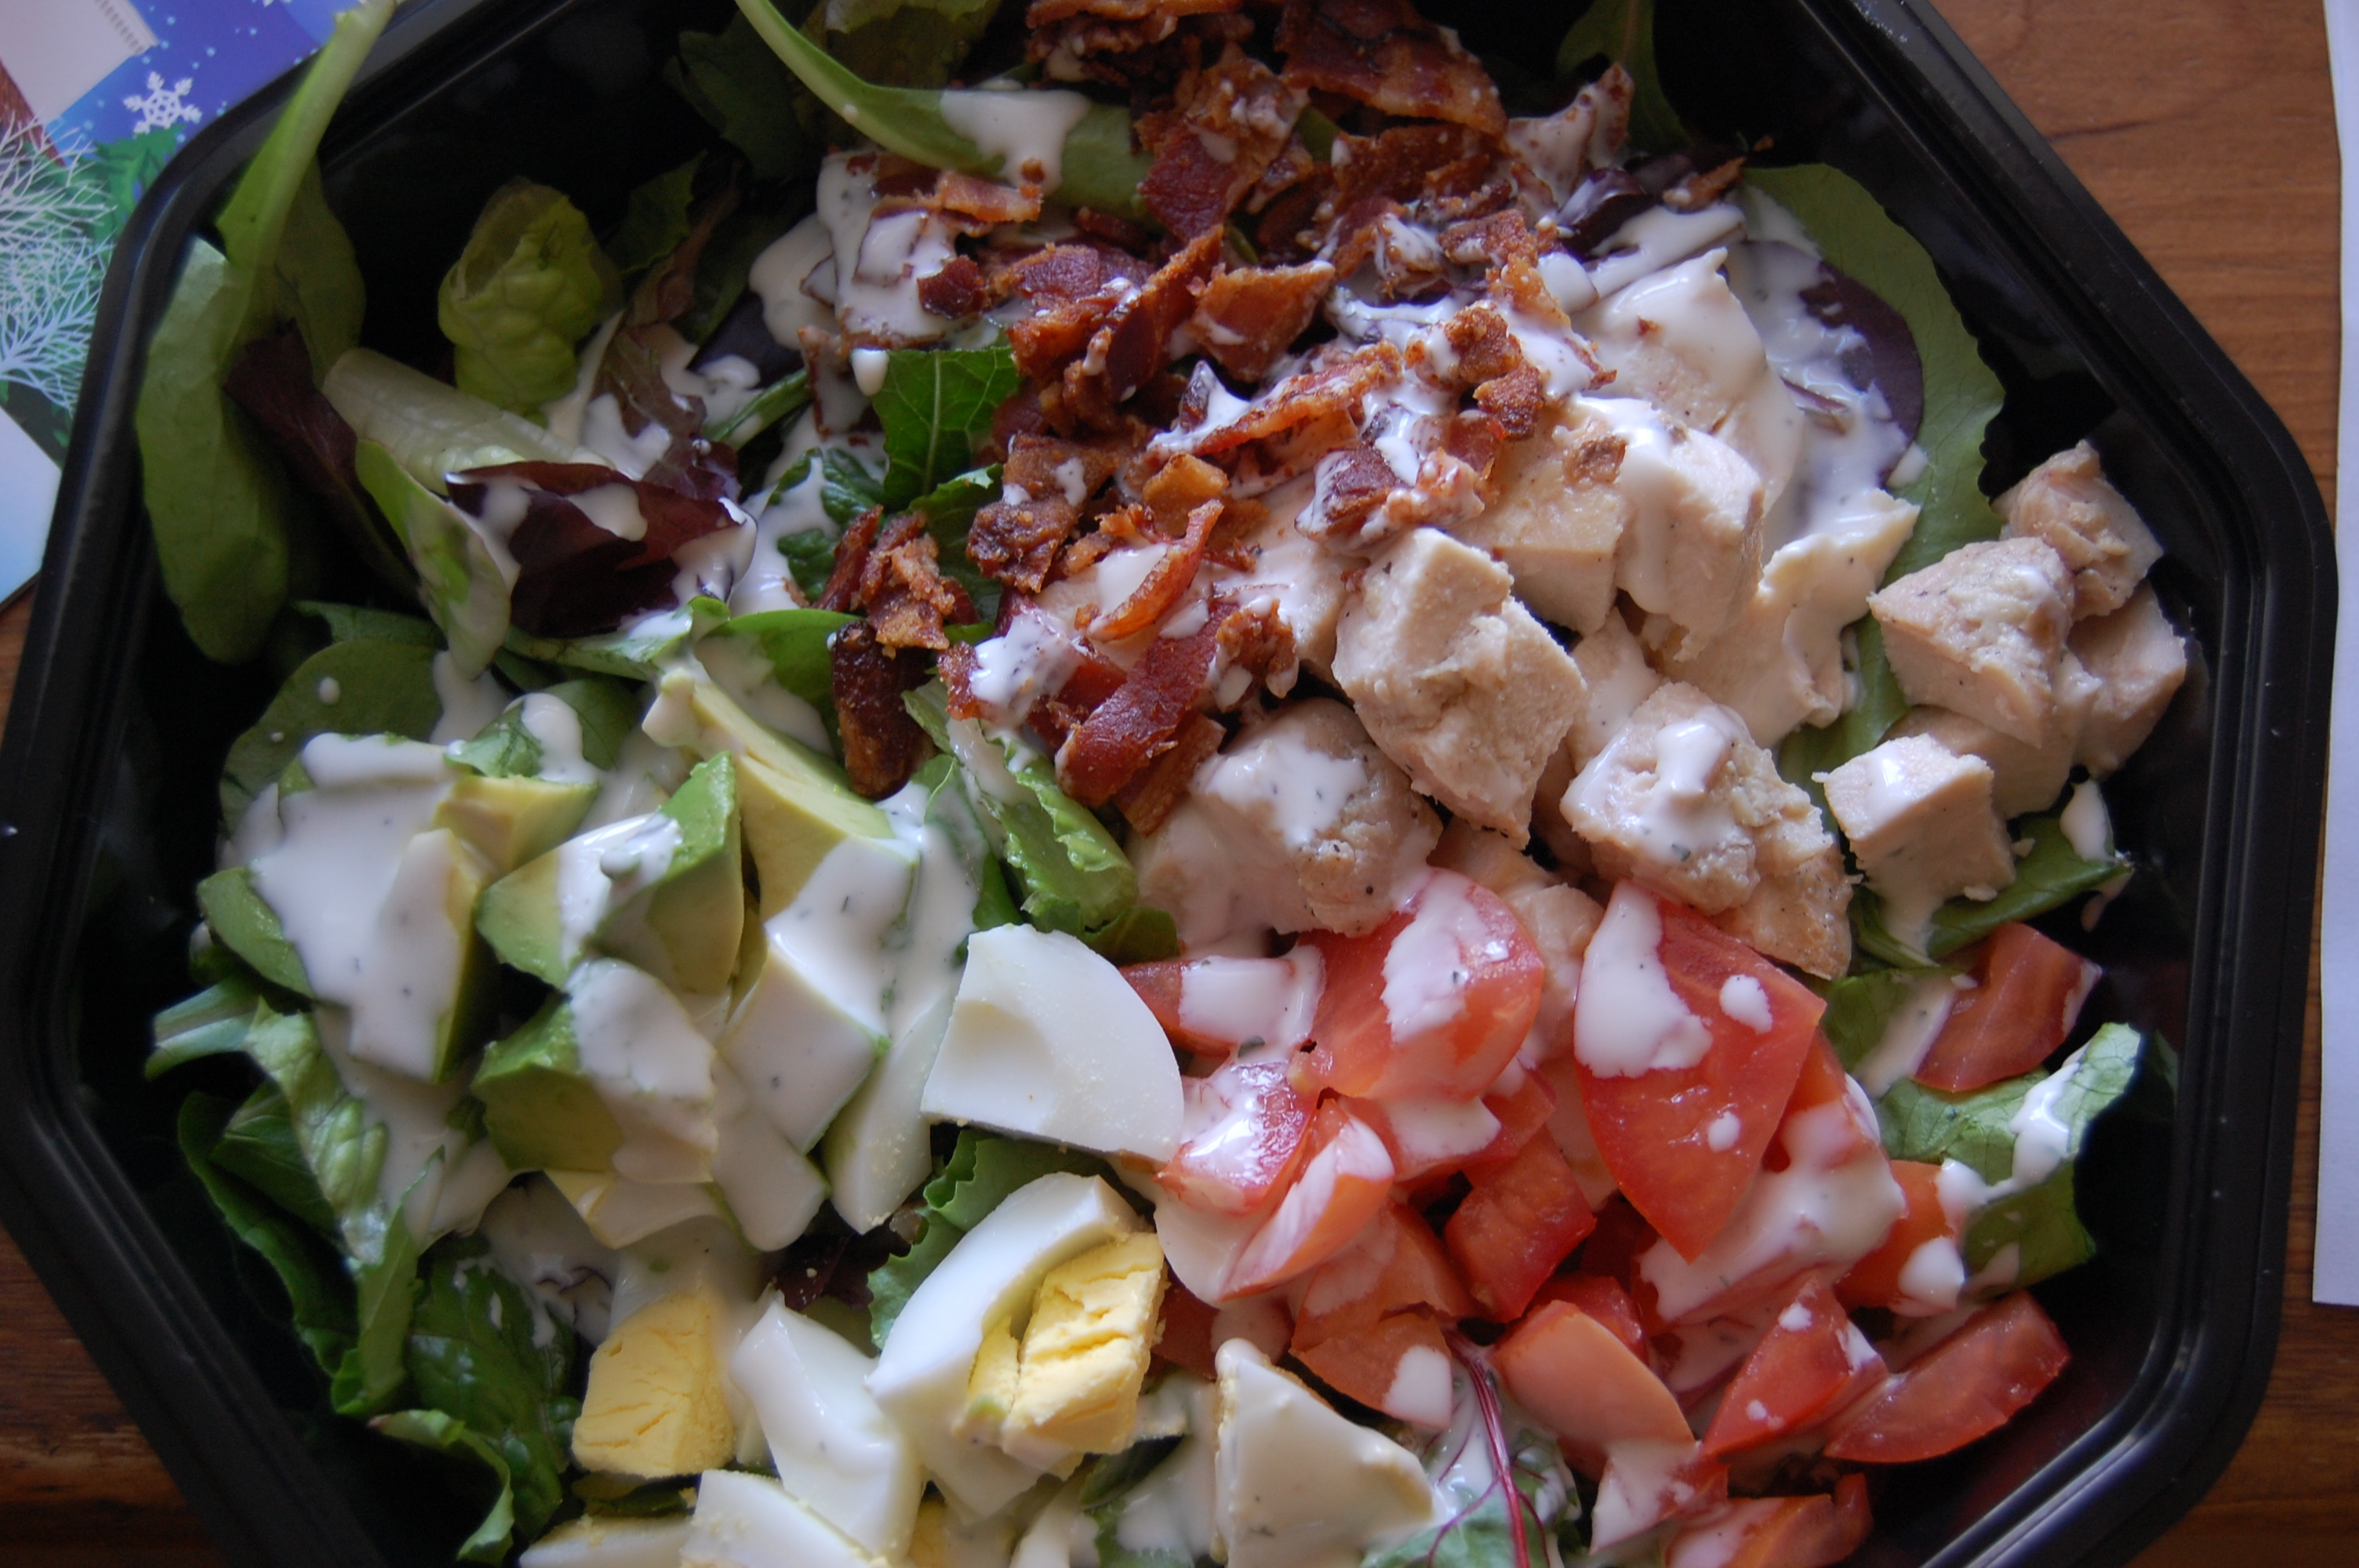 Cobb: The BLT of Salads